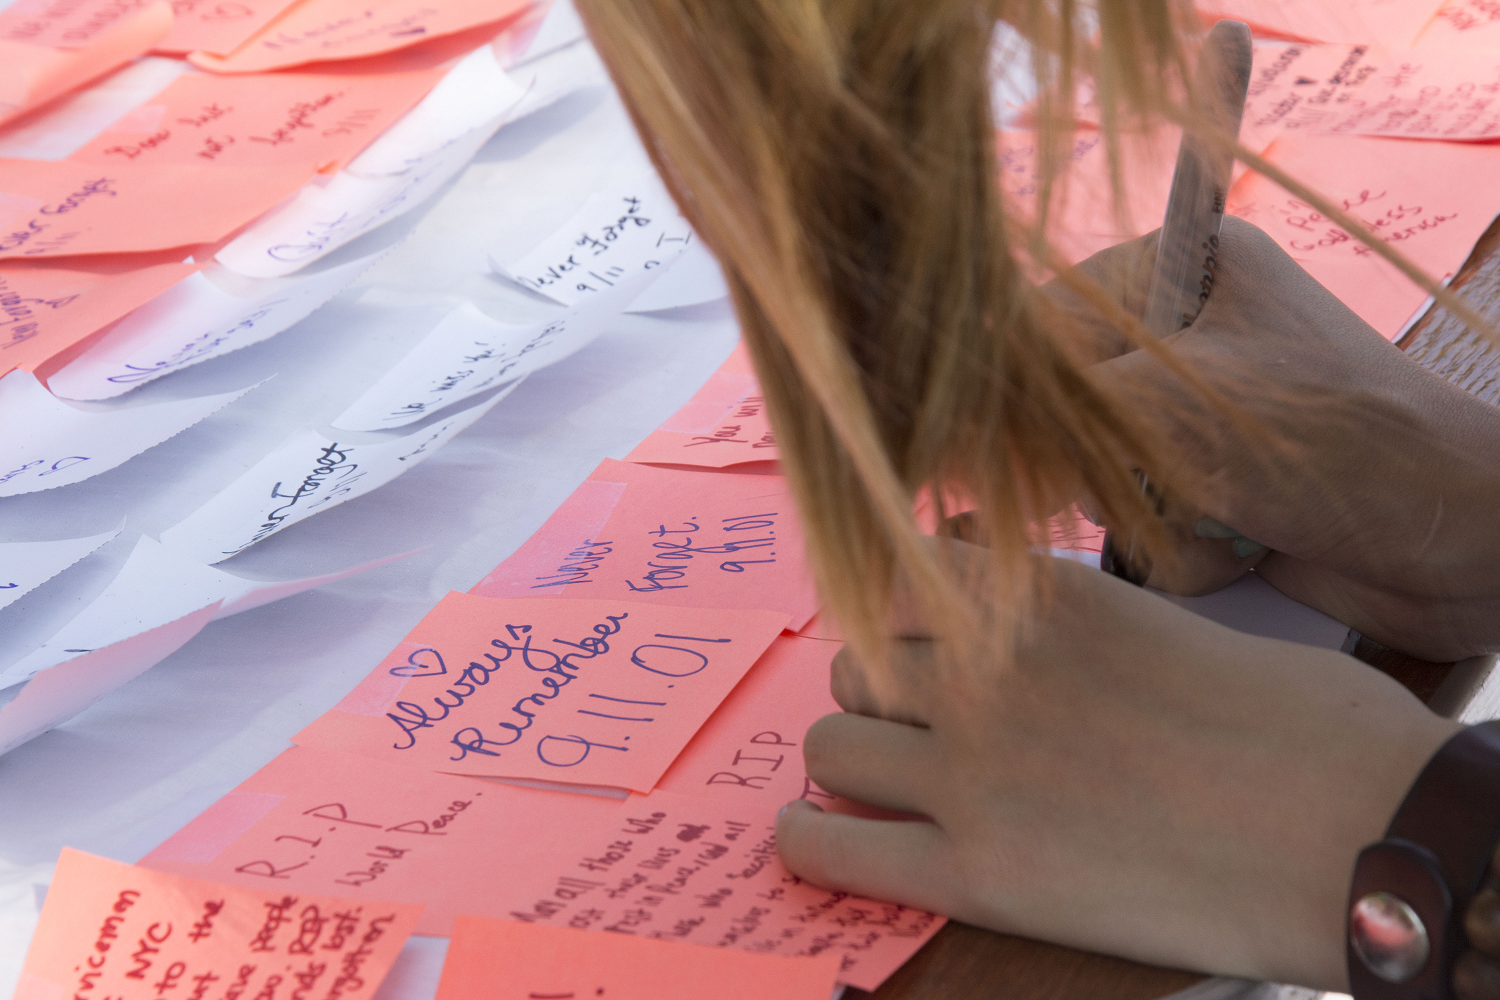 A large white sheet was plastered with the messages of passing students on white and salmon colored post-it notes.